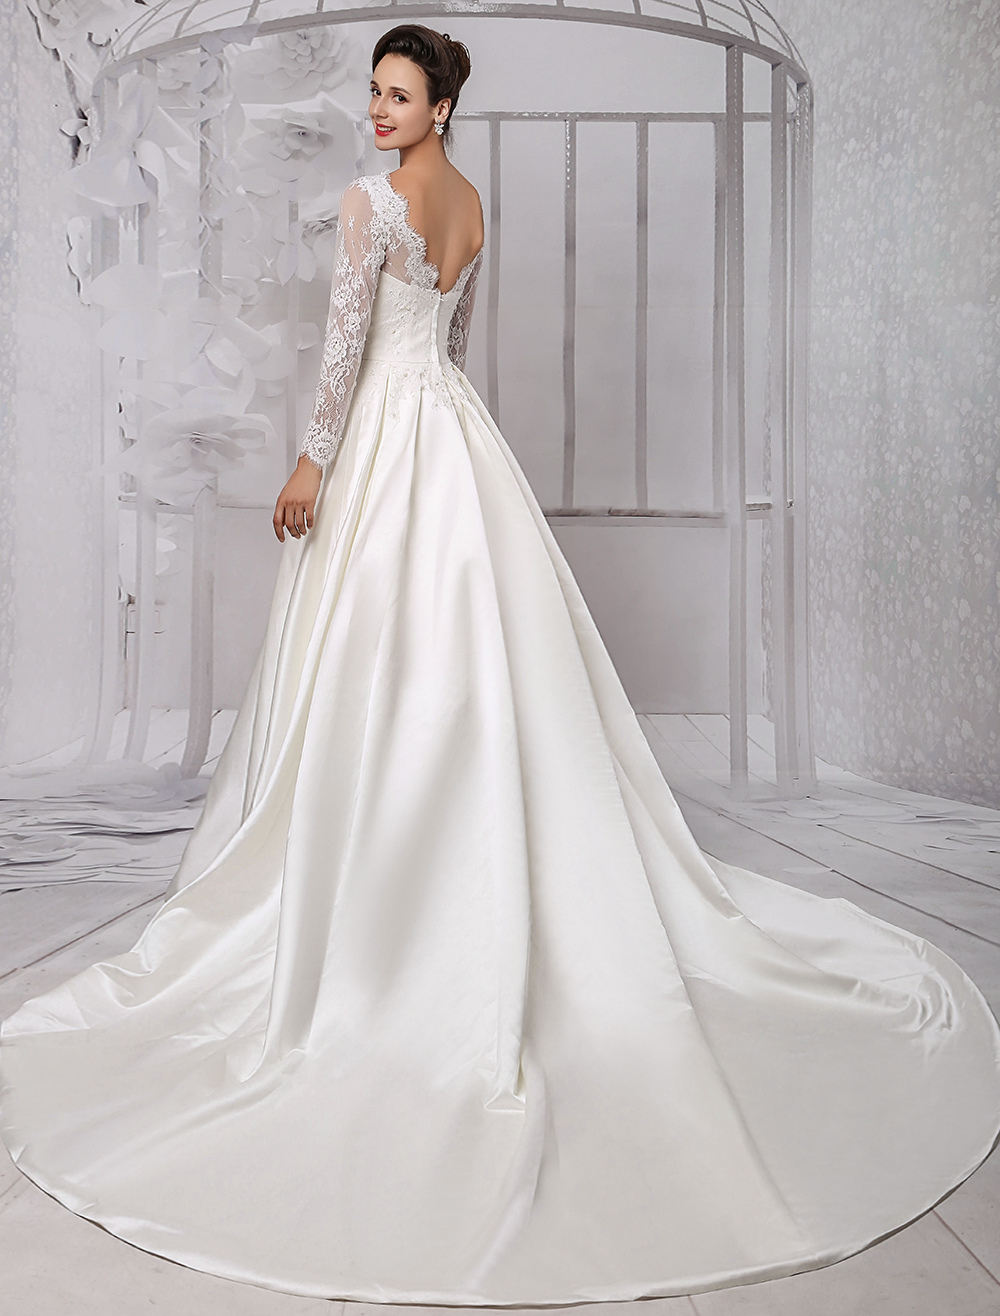 Long Sleeve Lace Wedding Dress Bridal Gown With Cathedral Train Milanoo photo